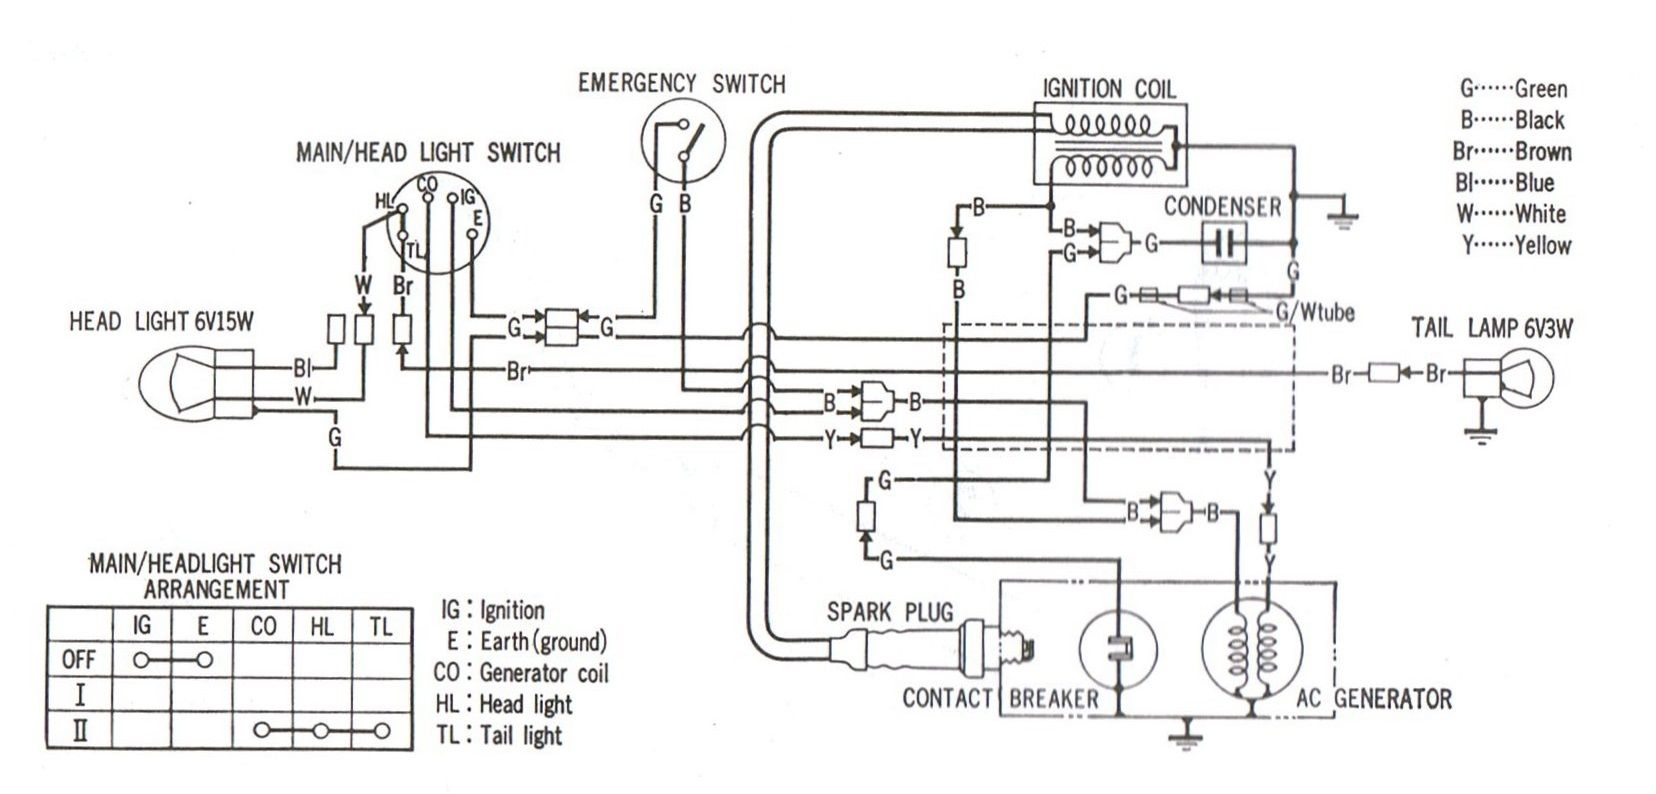 Extraordinary 1982 Honda C70 Passport Wiring Diagram Gallery